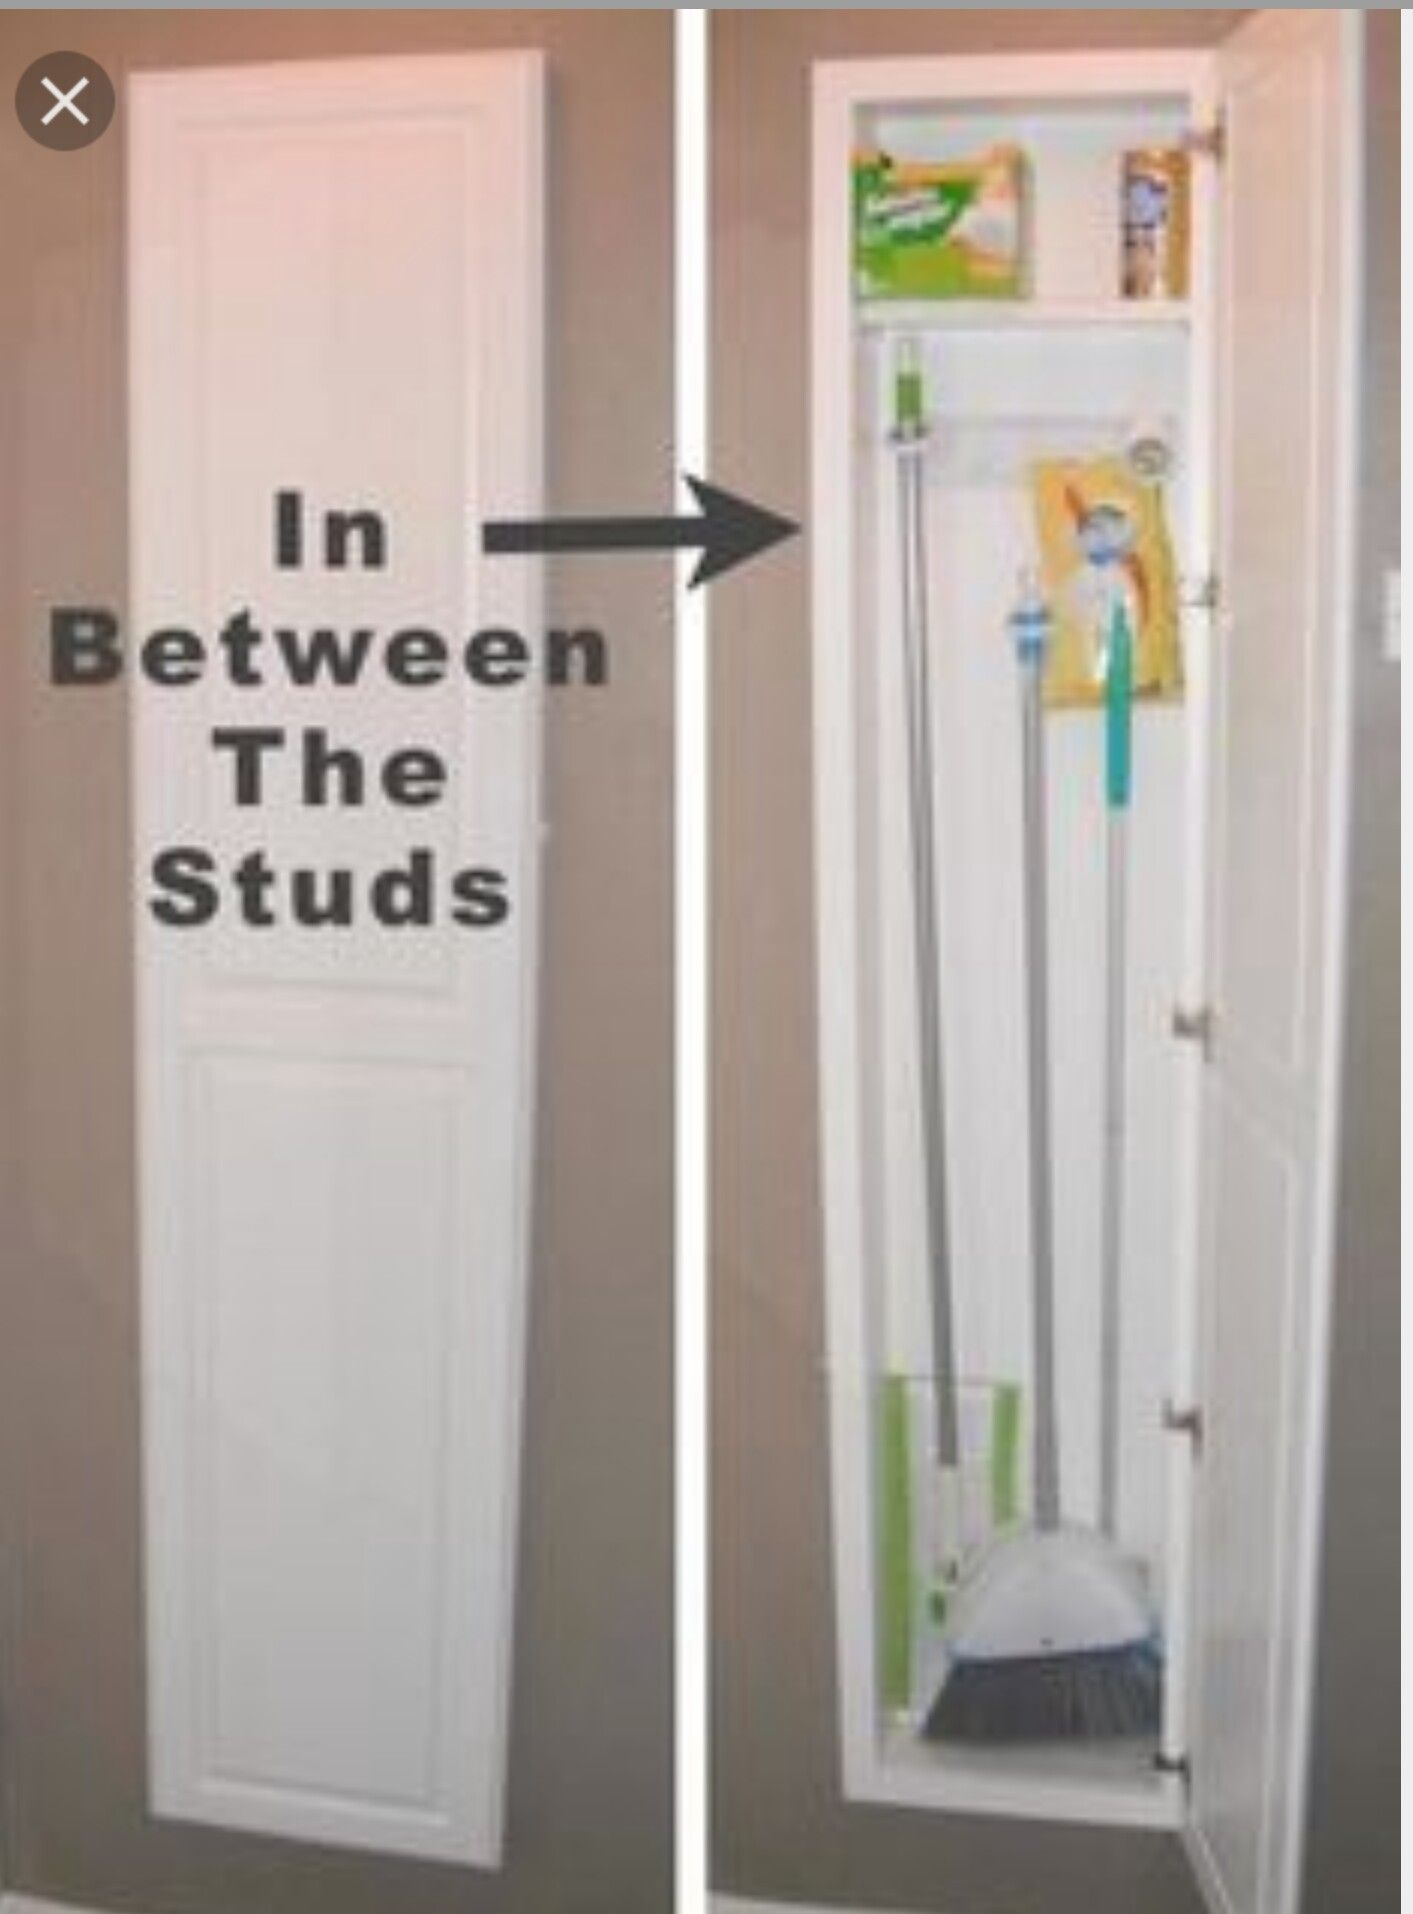 Built In Between Studs Small Space Hacks Home Projects Home Diy